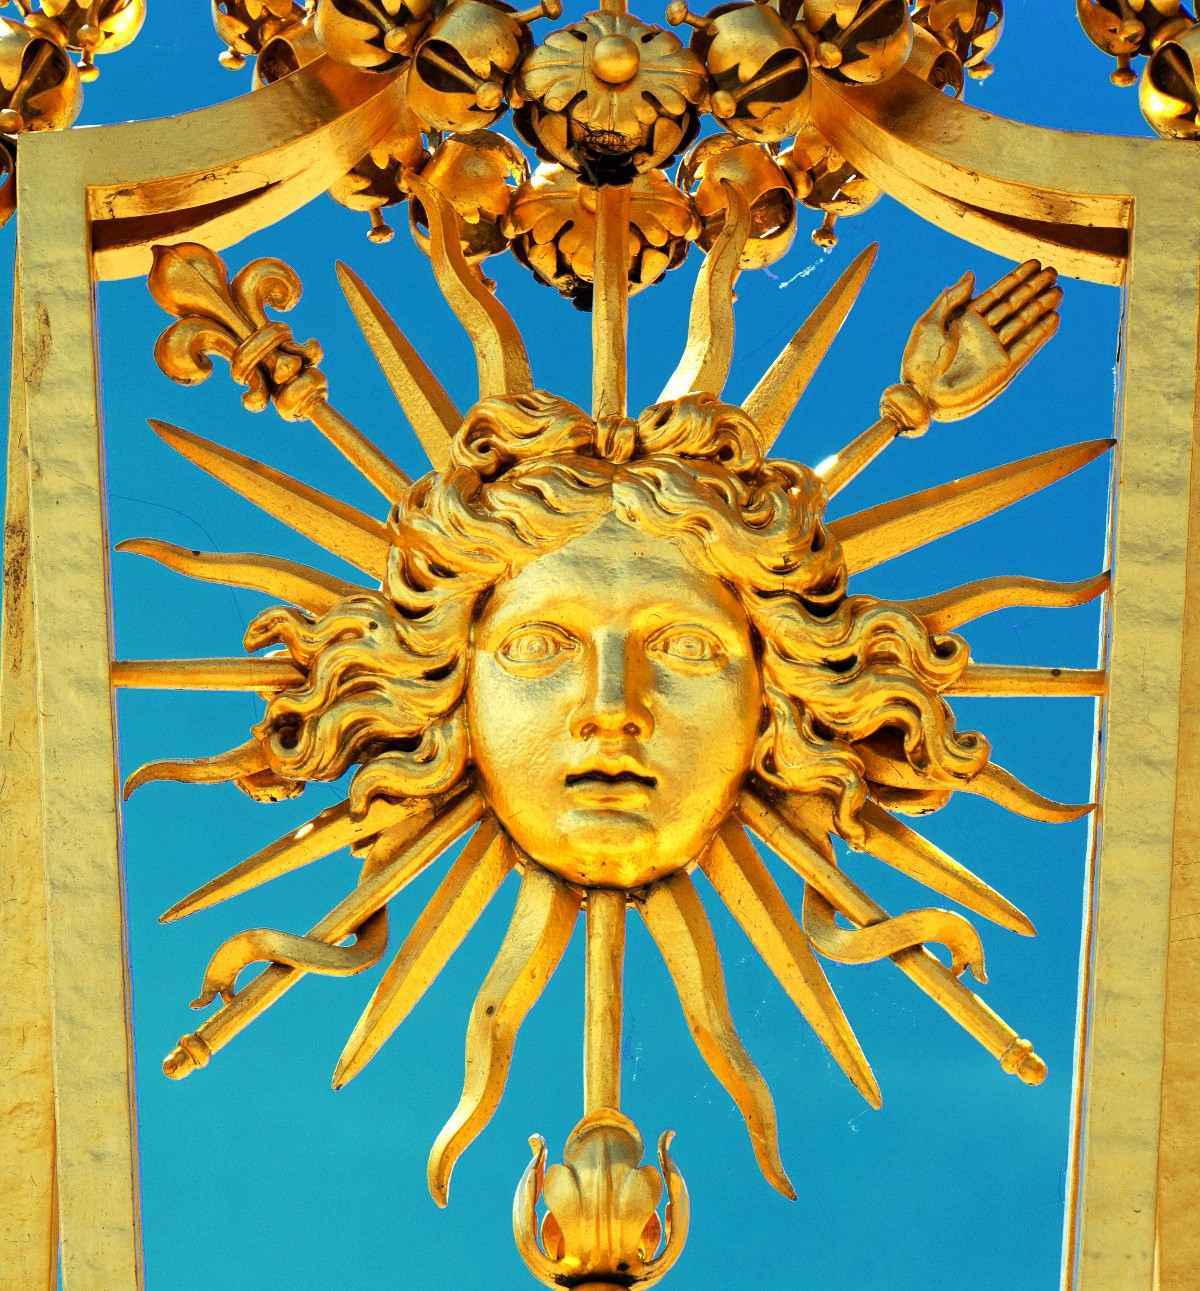 Louis's sun symbol on the gates of Versailles. Credit Dennis Jarvis